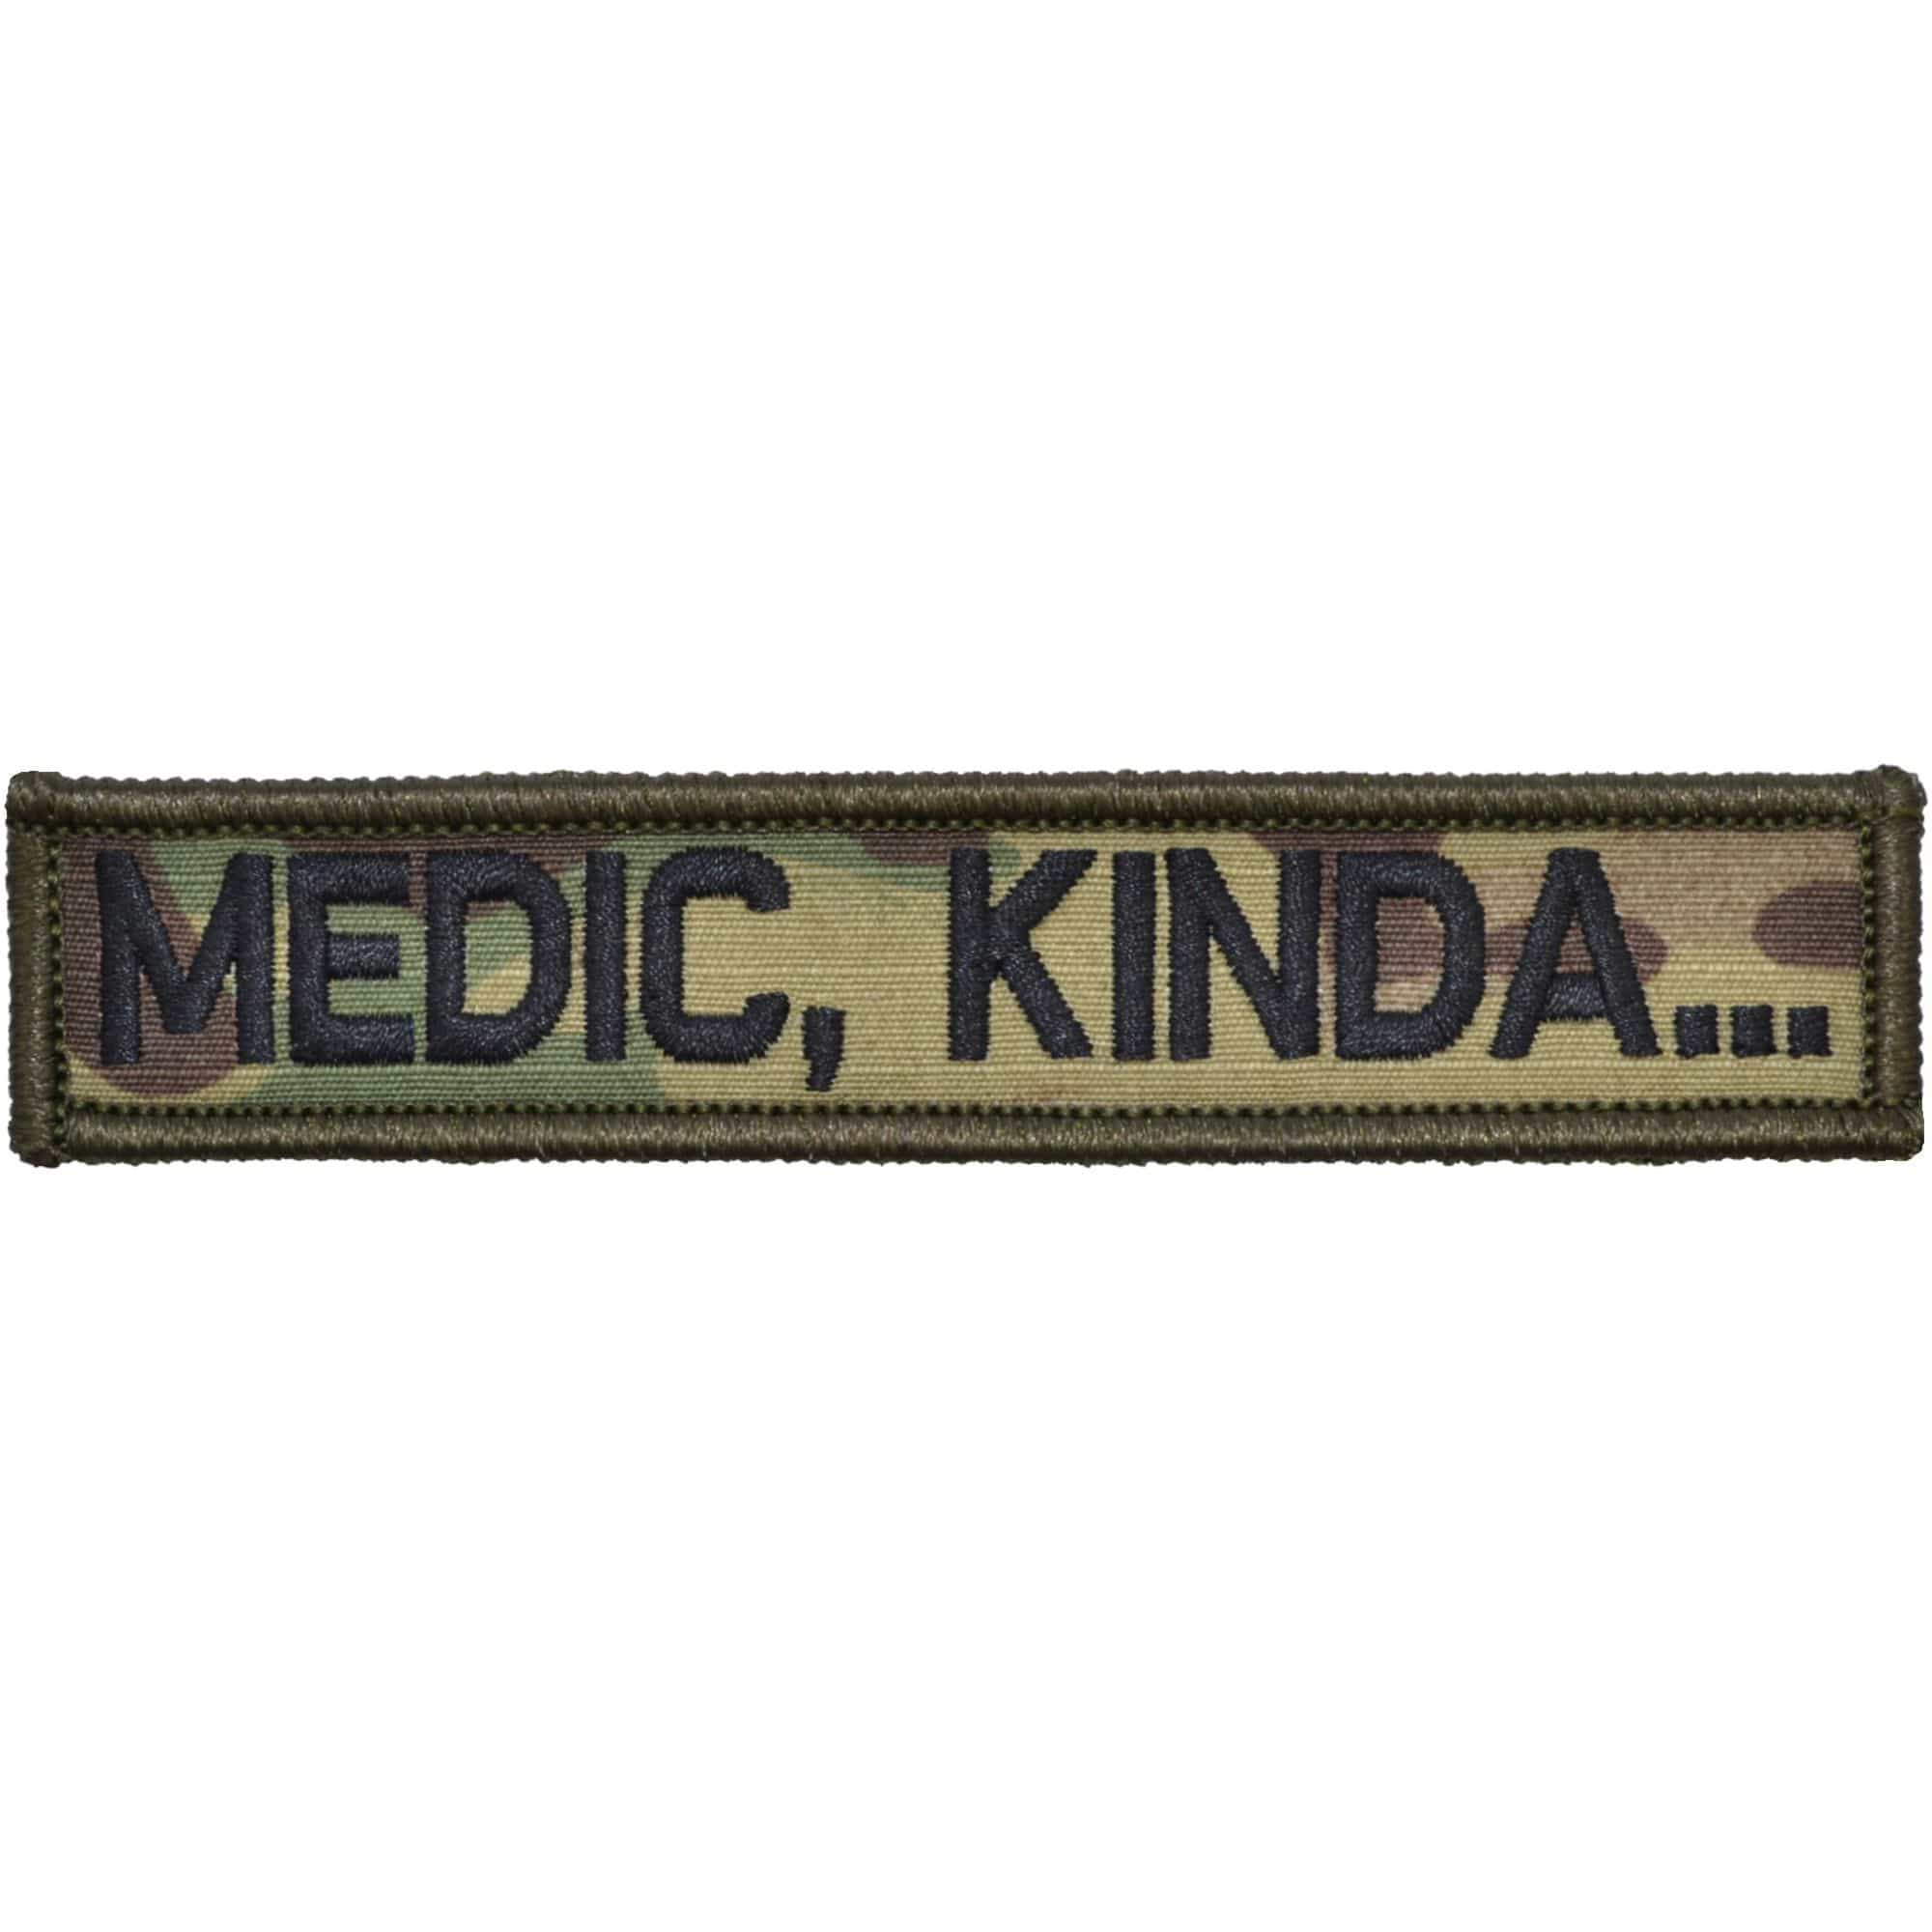 Tactical Gear Junkie Patches MultiCam Medic, Kinda... - 1x5 Patch